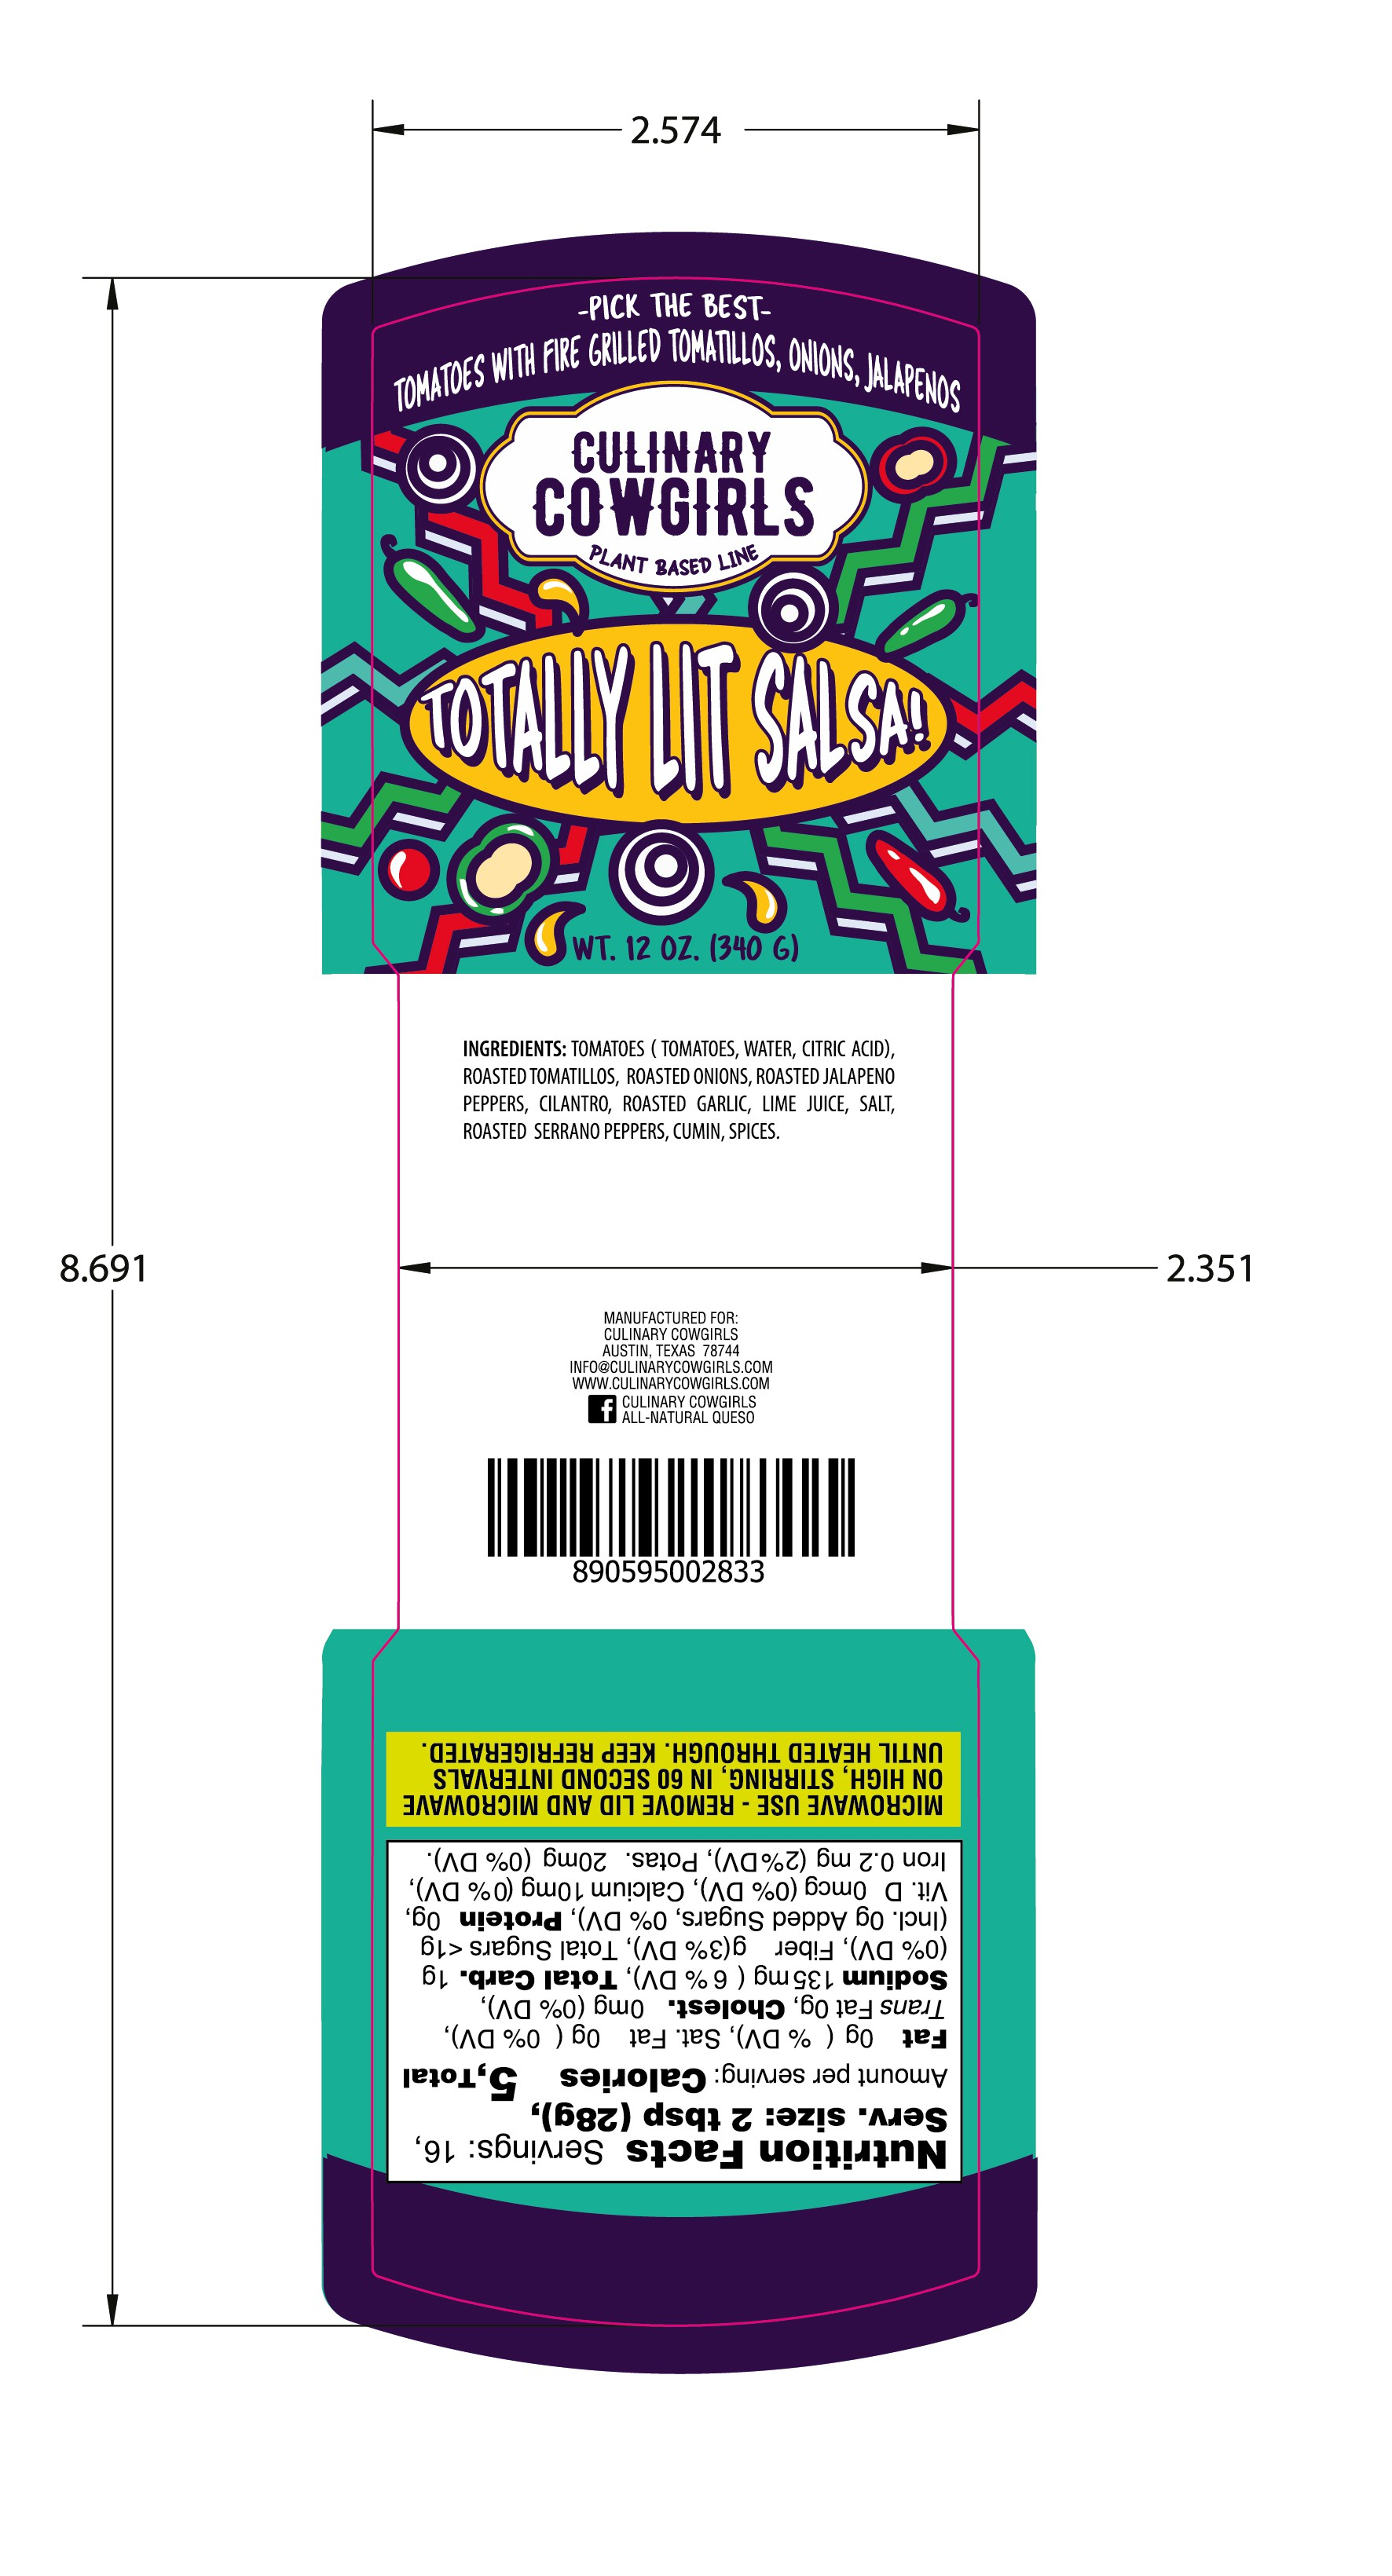 food label for national line